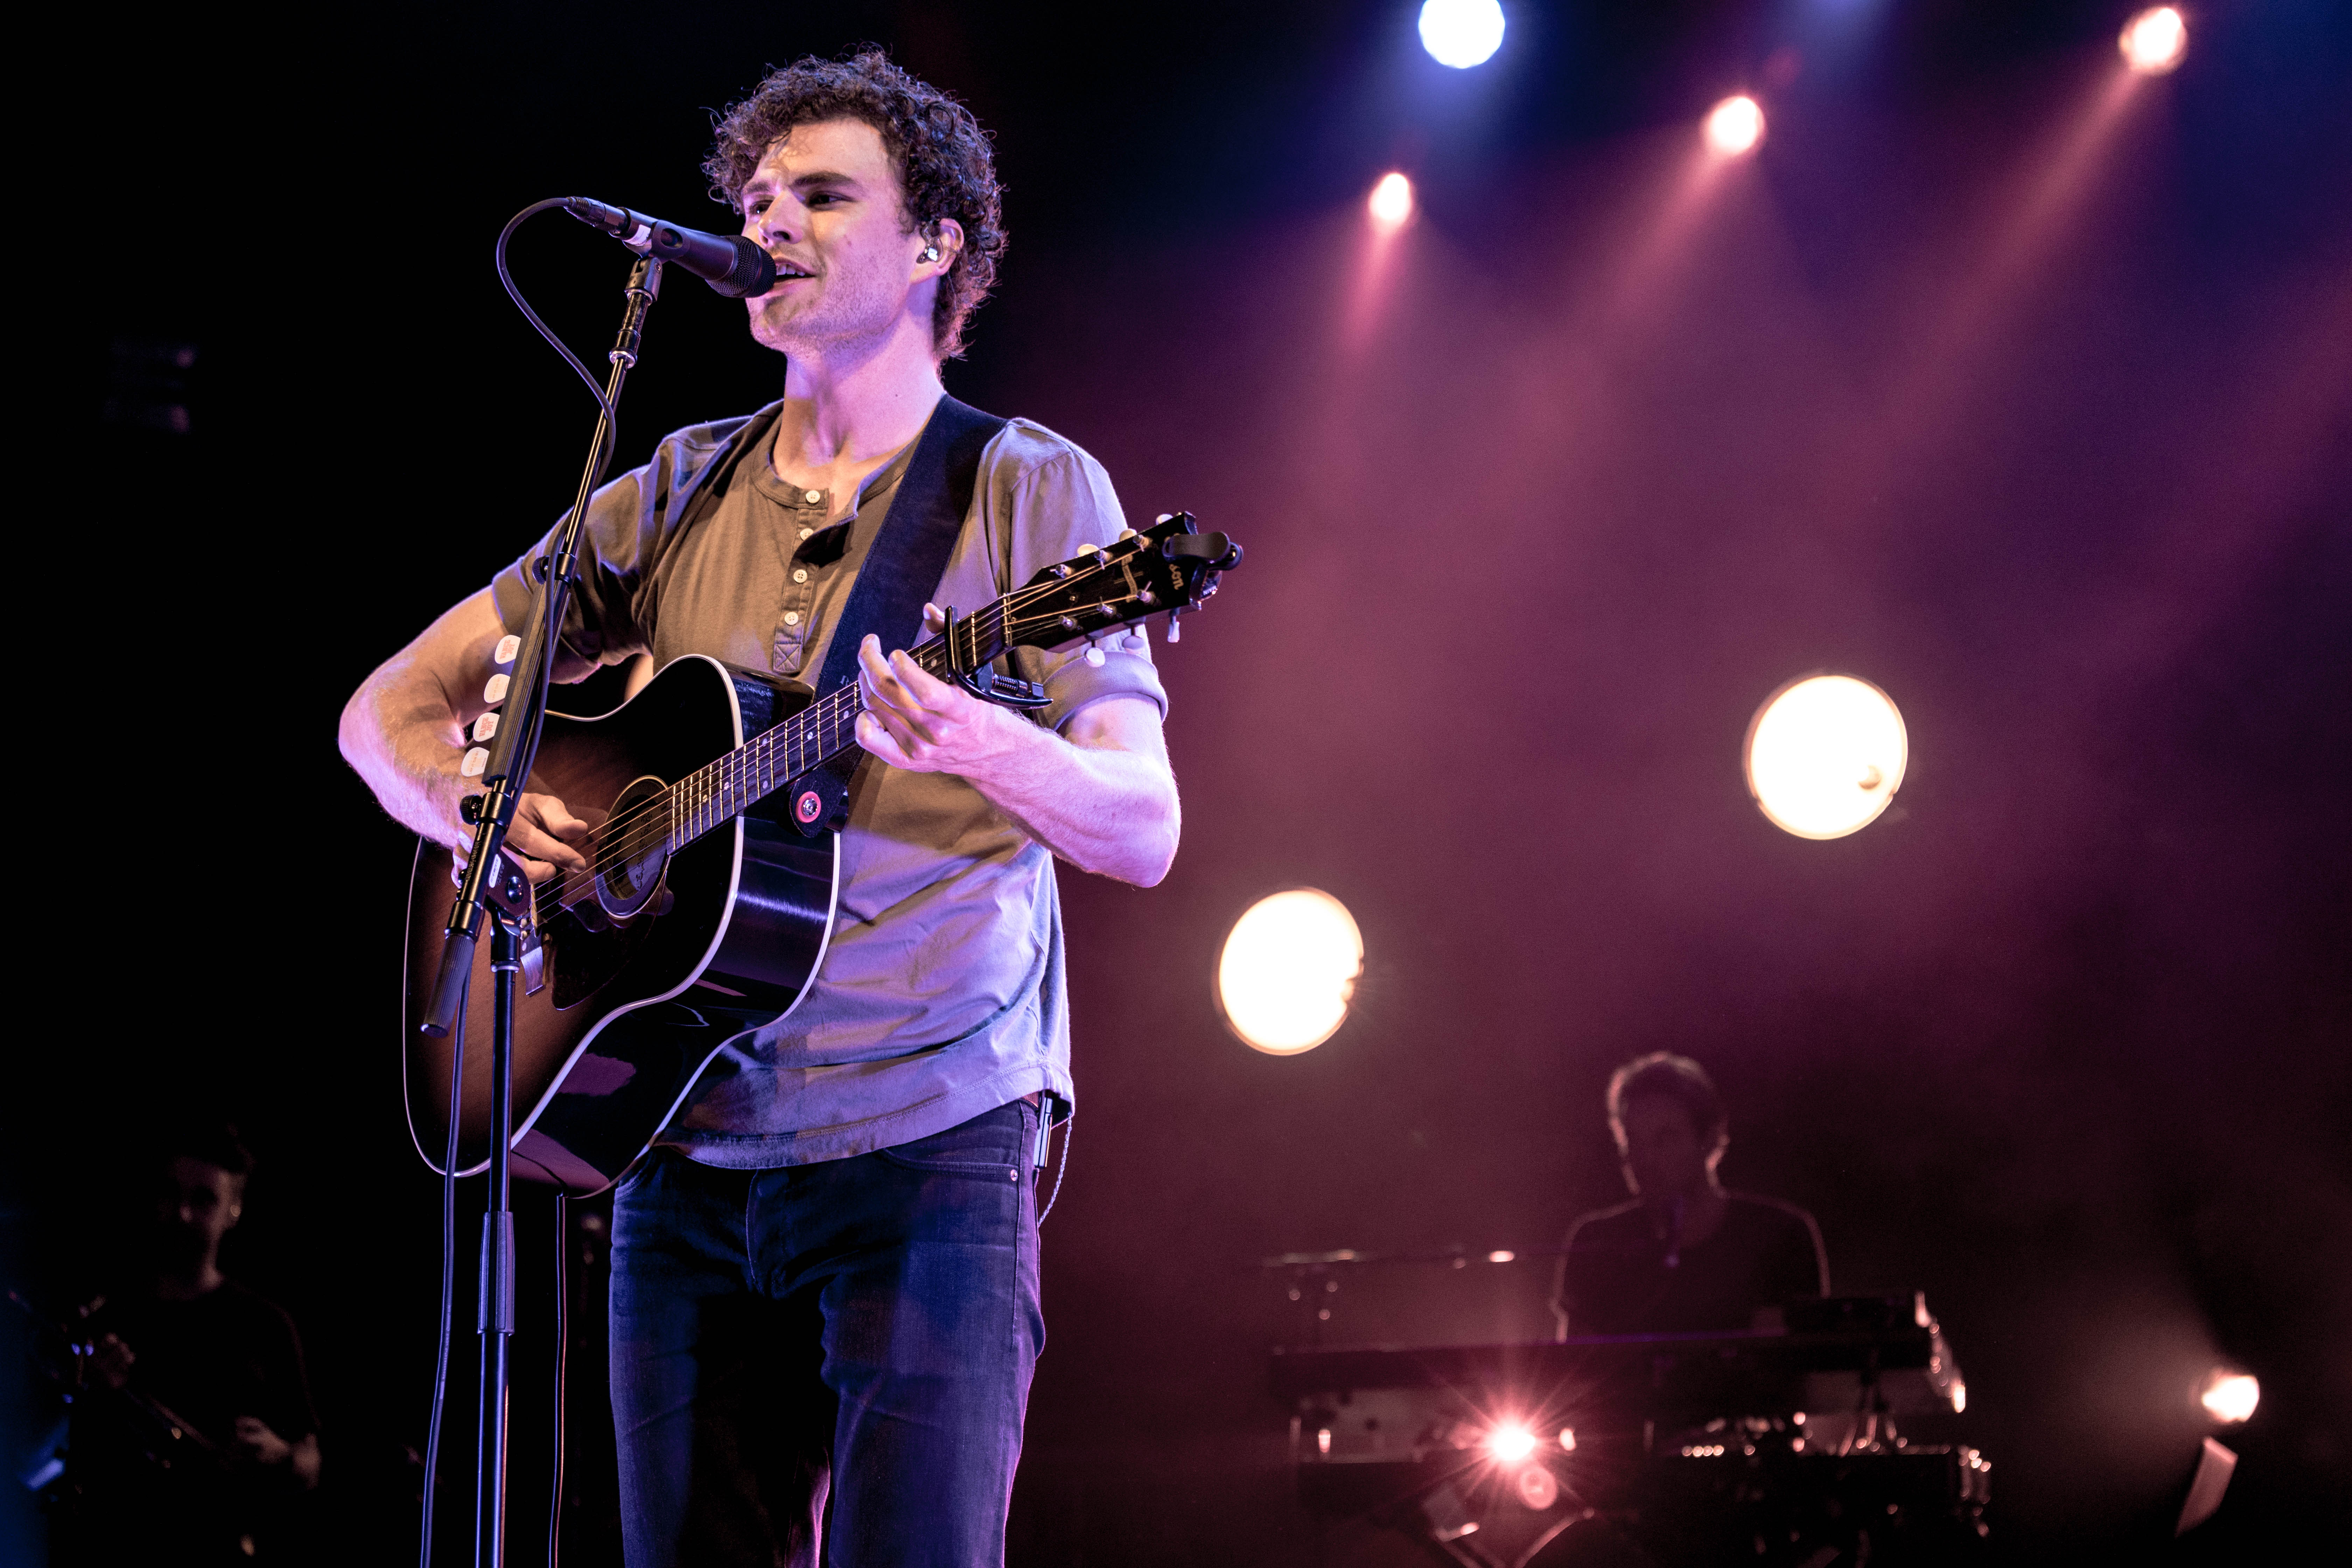 vance joy live review sydney photo credit statler willand savage thrills savagethrills 9